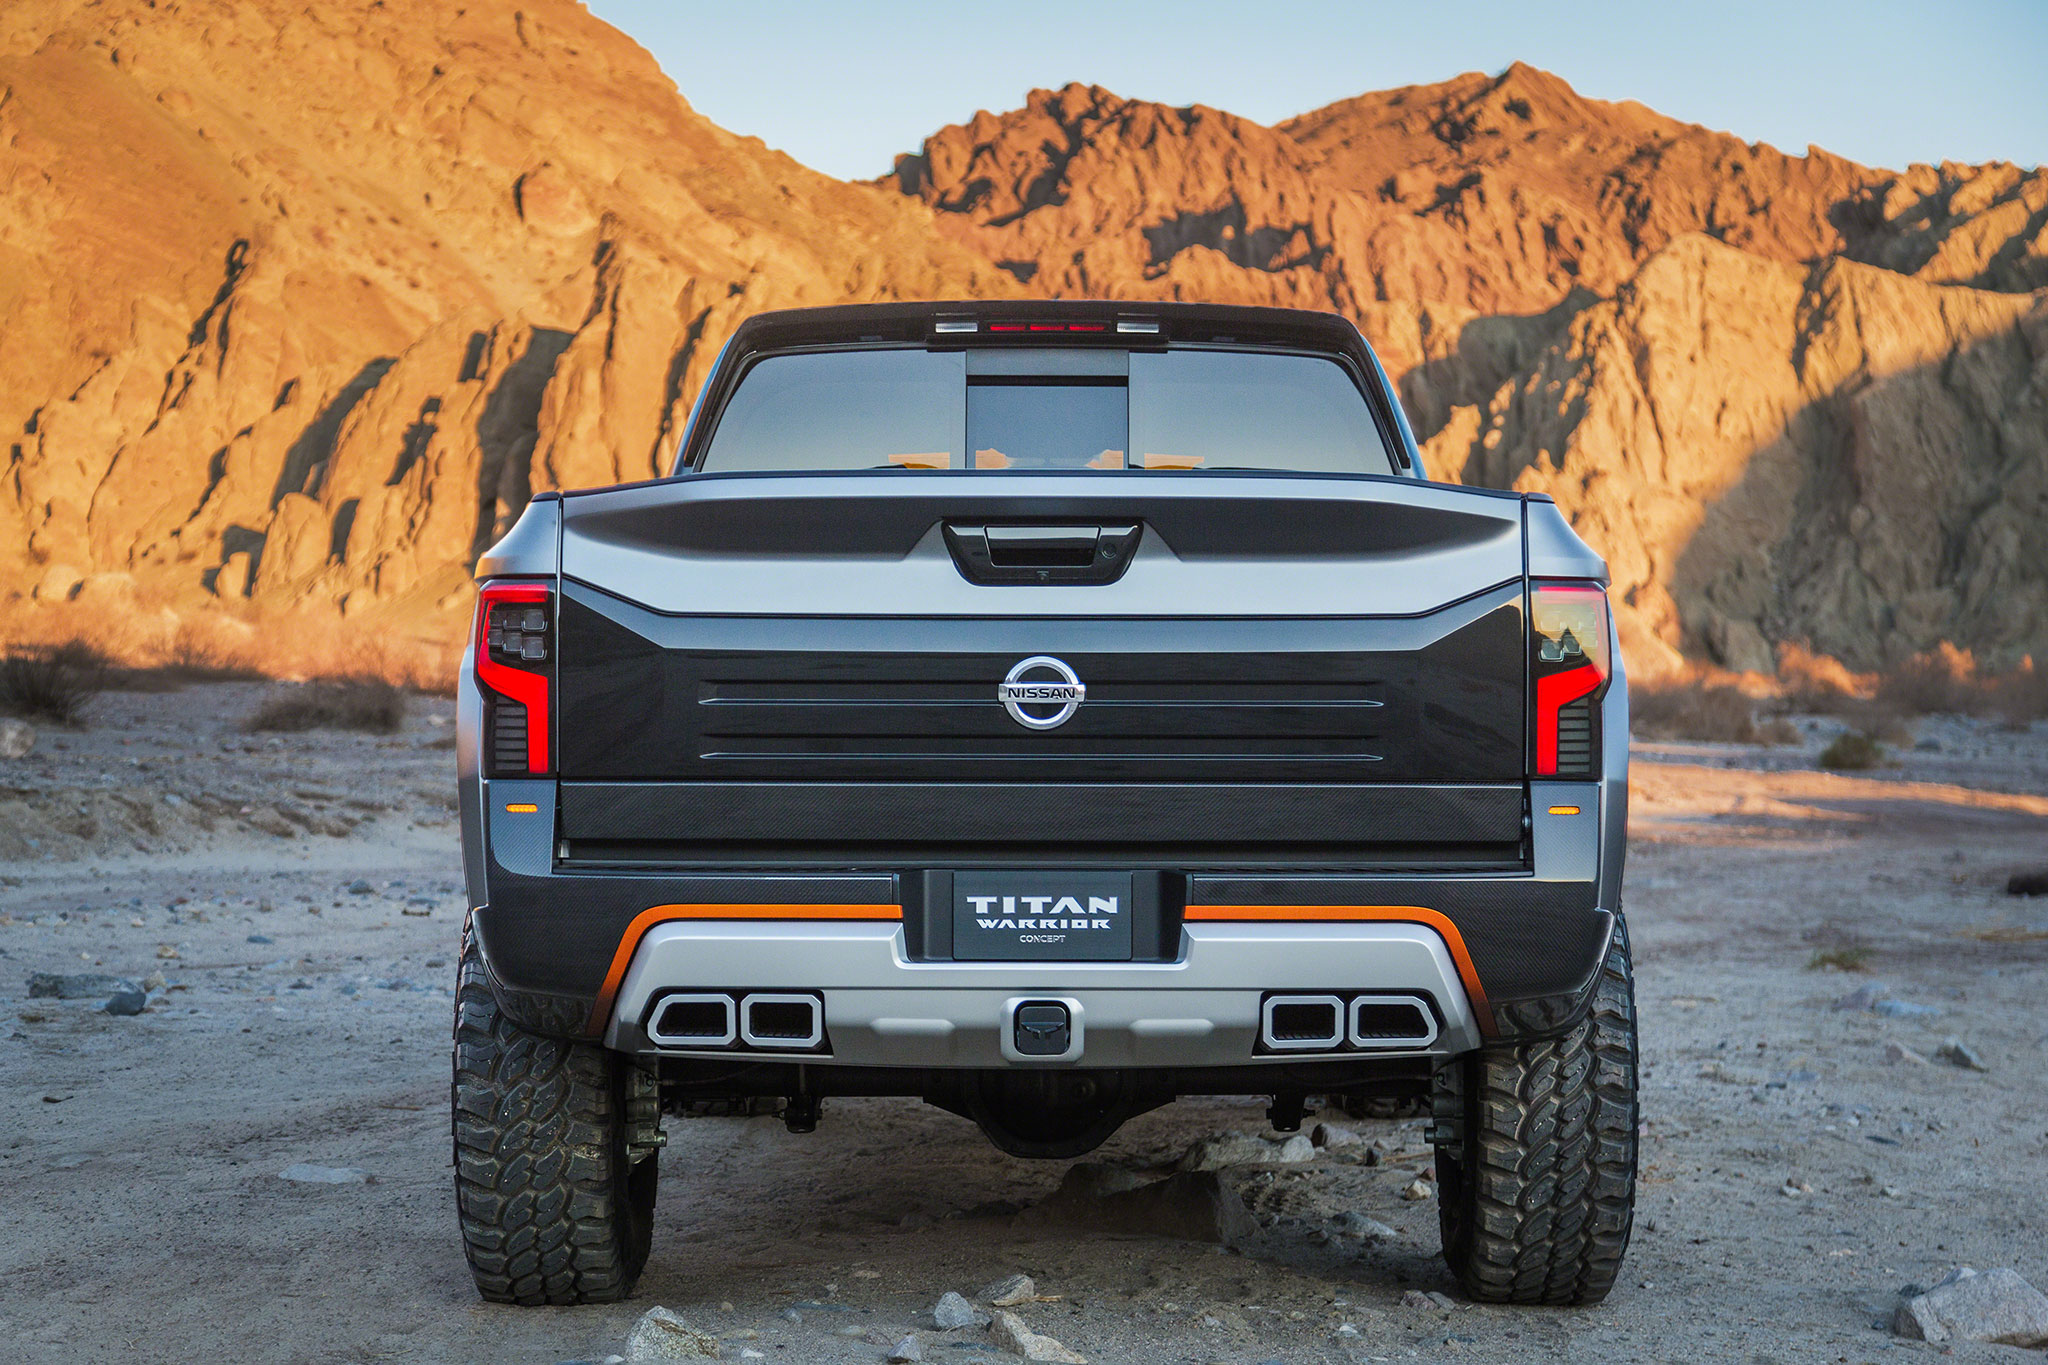 Nissan titan warrior concept is an off road monster show more vanachro Images